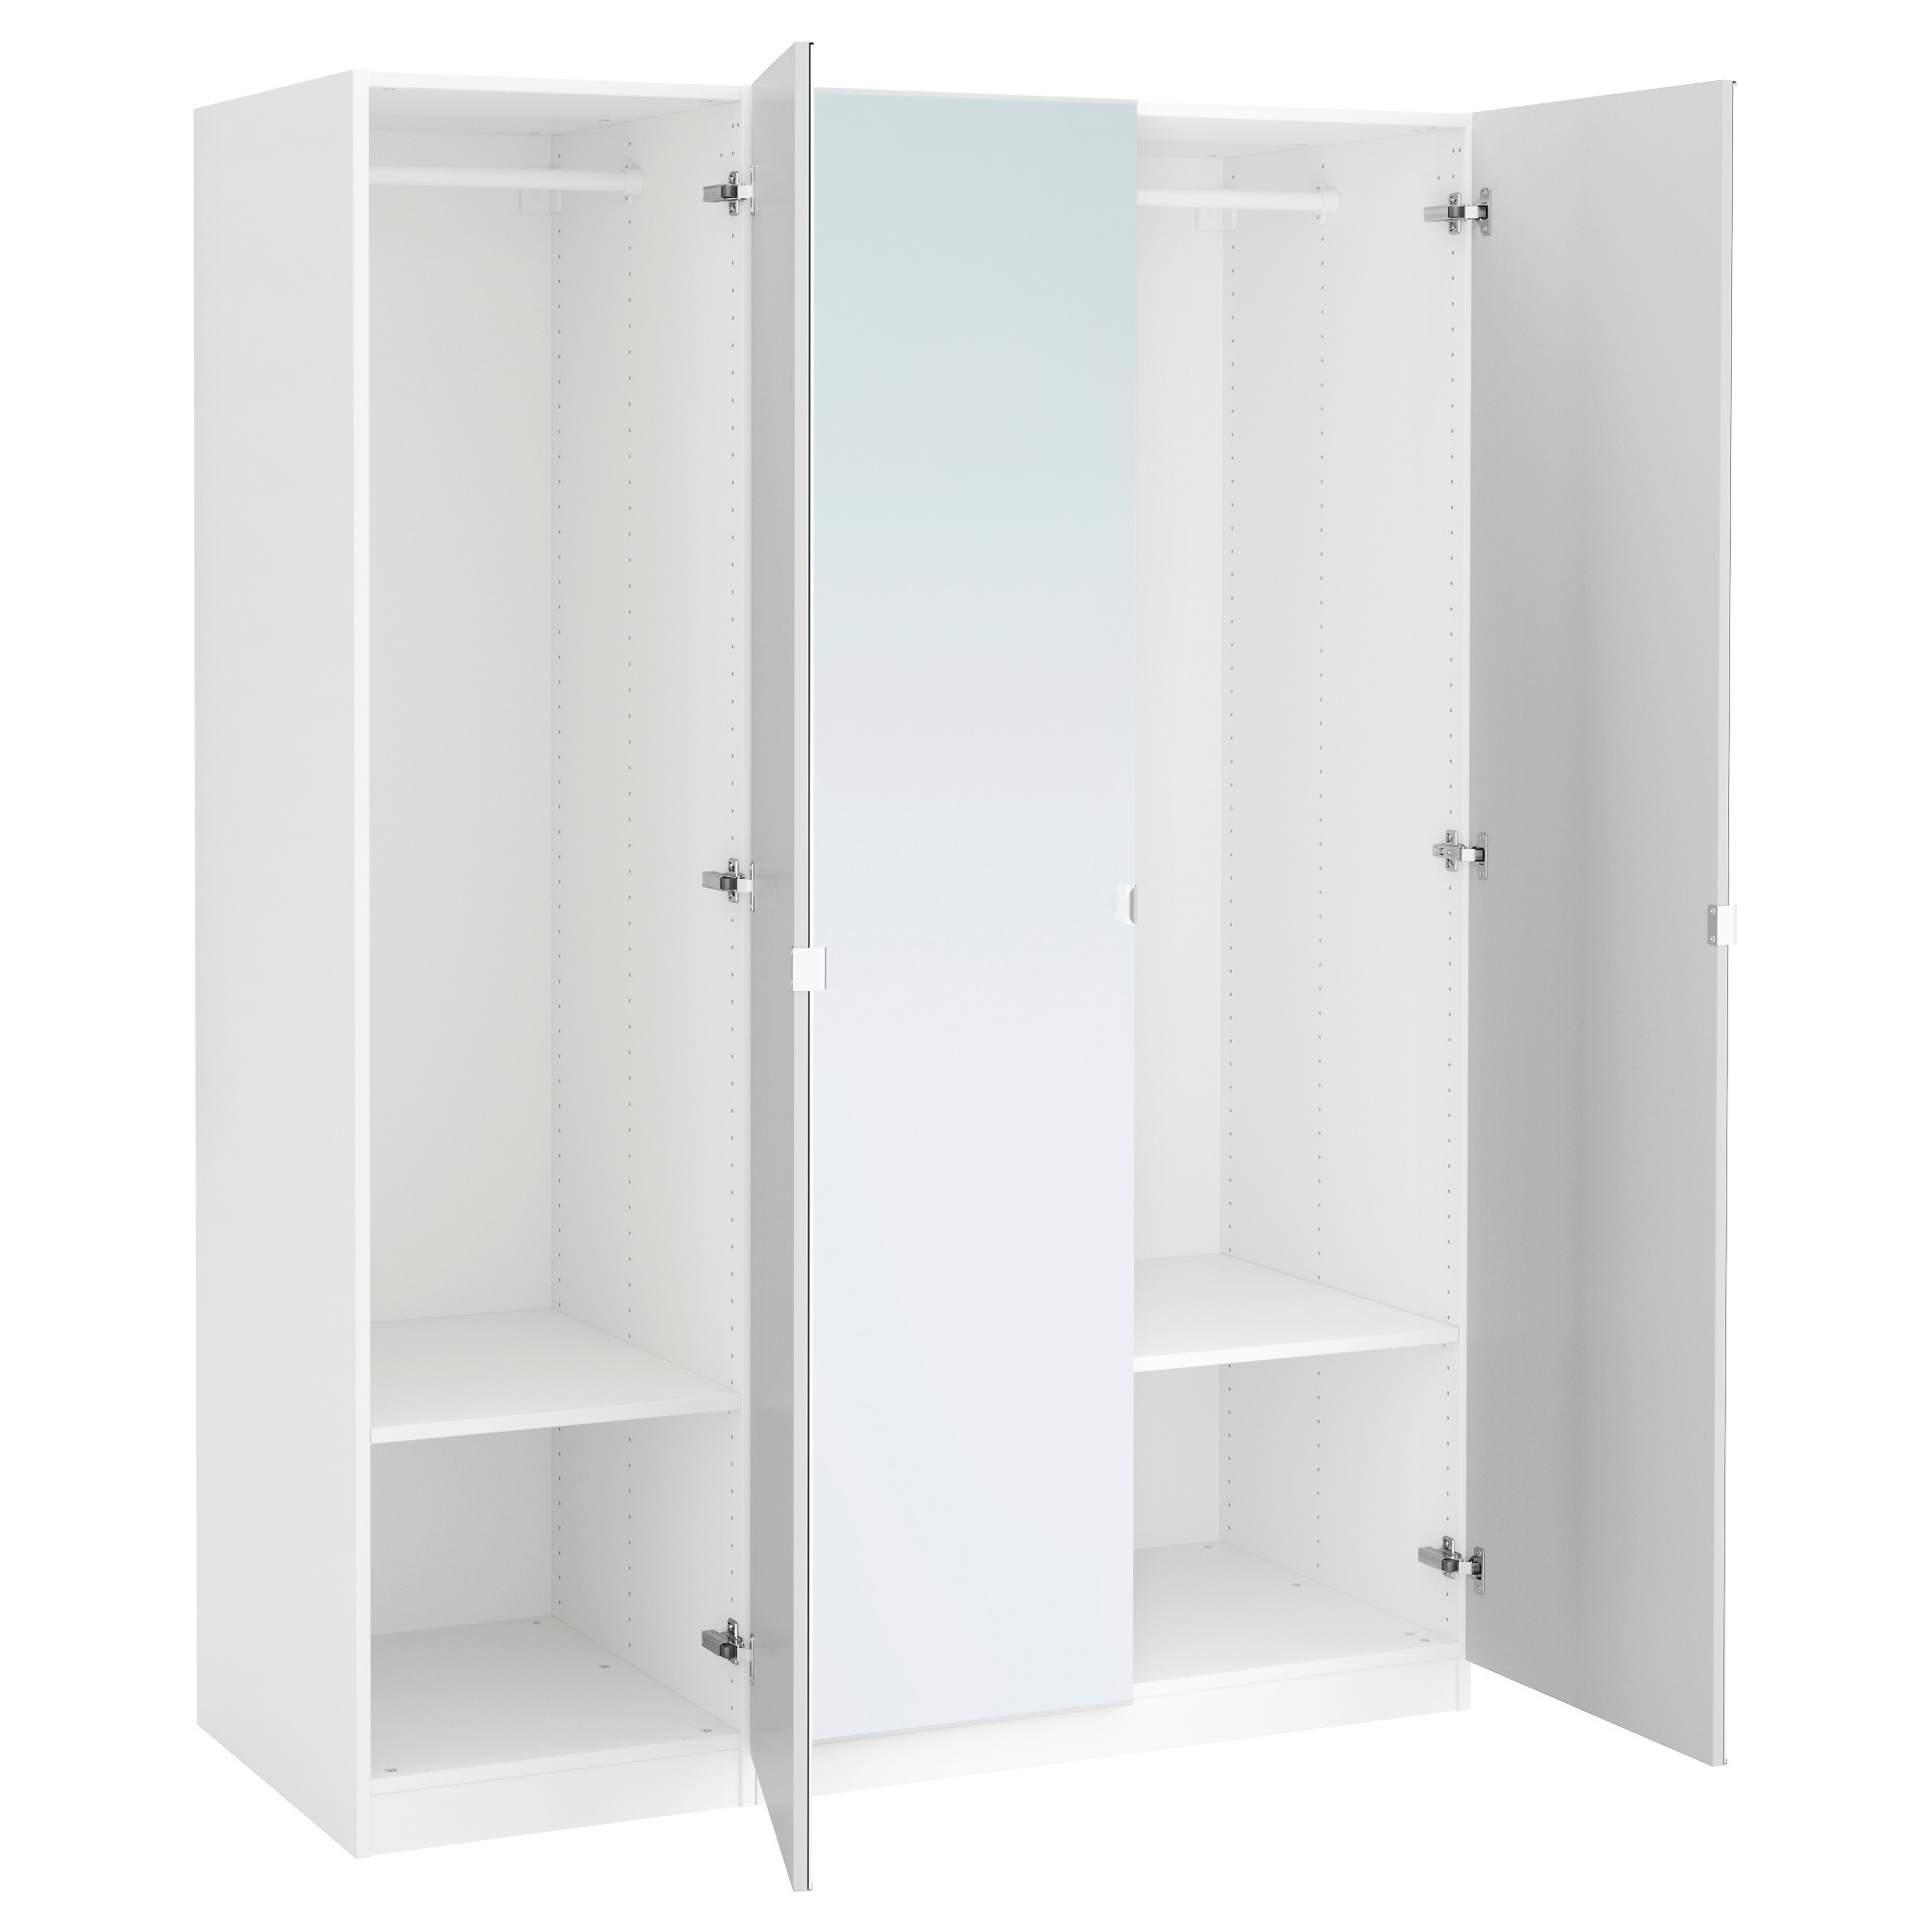 Cheap White Wardrobes Intended For Well Liked Pax Wardrobe White/vikedal Mirror Glass 150X60X201 Cm – Ikea (View 5 of 15)